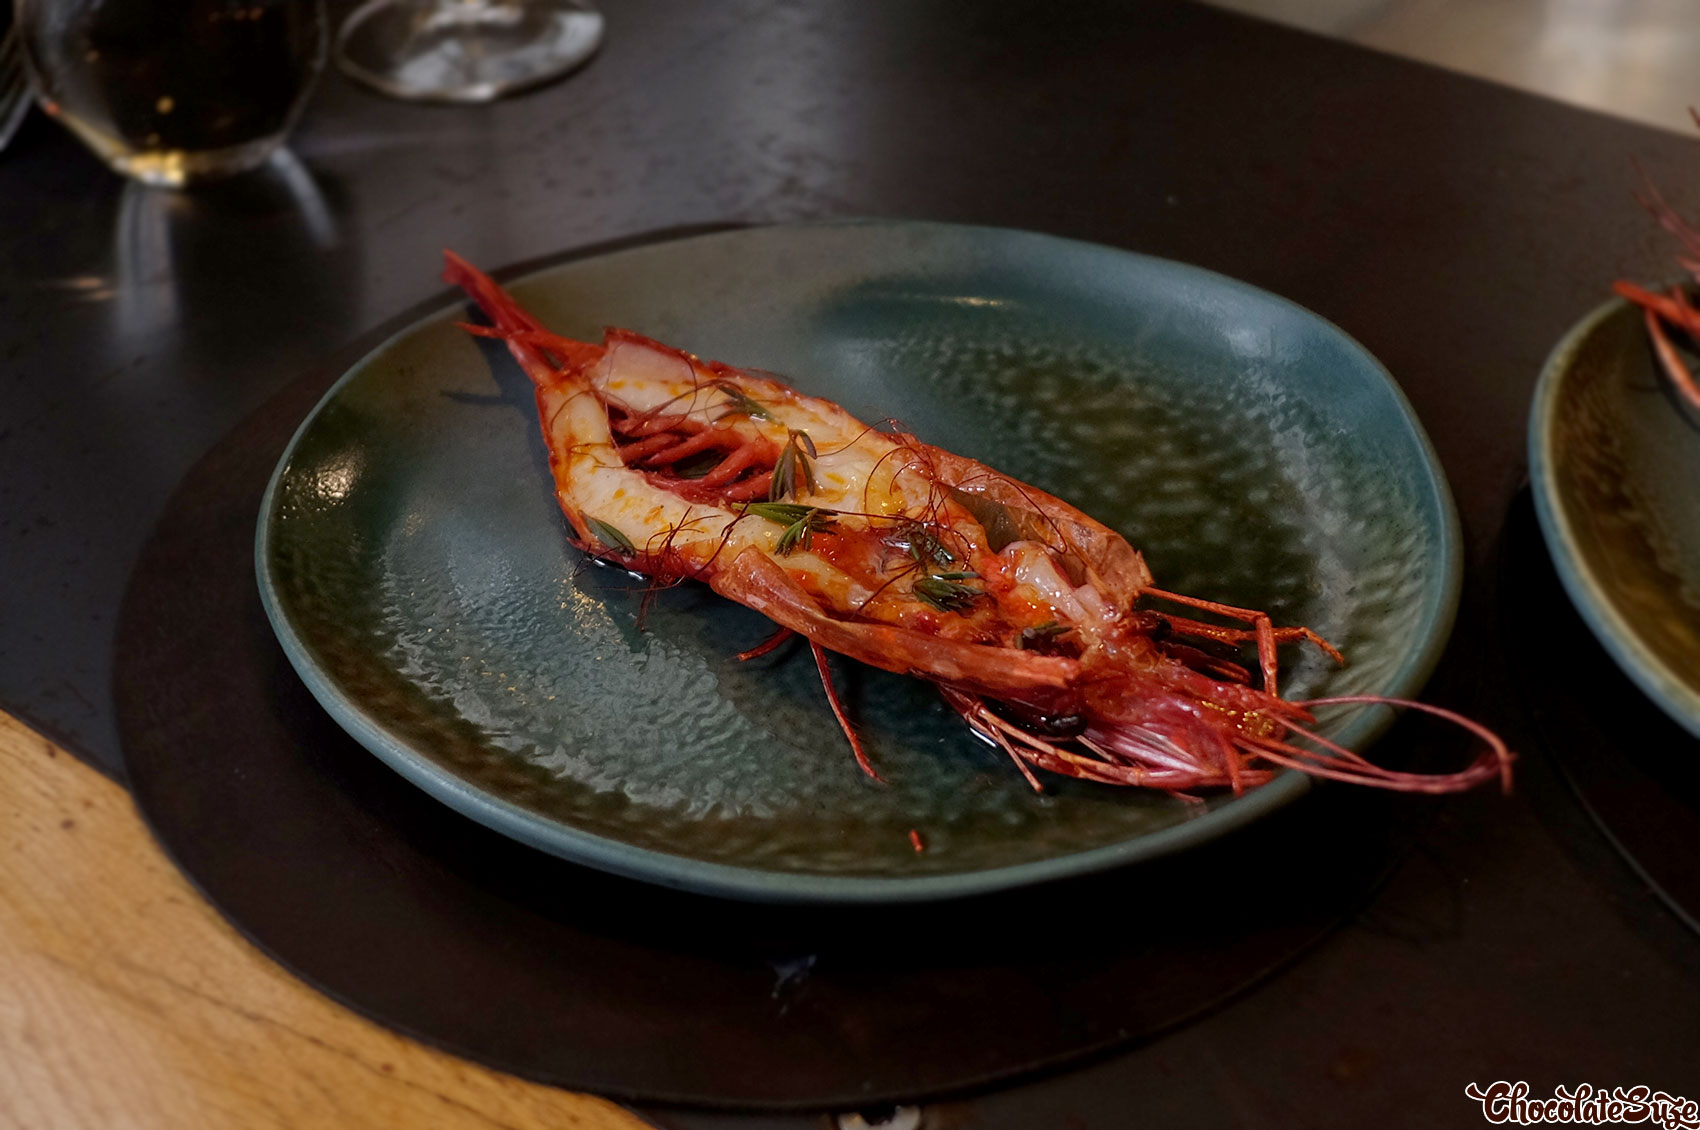 Scarlet Prawn at Firedoor, Surry Hills